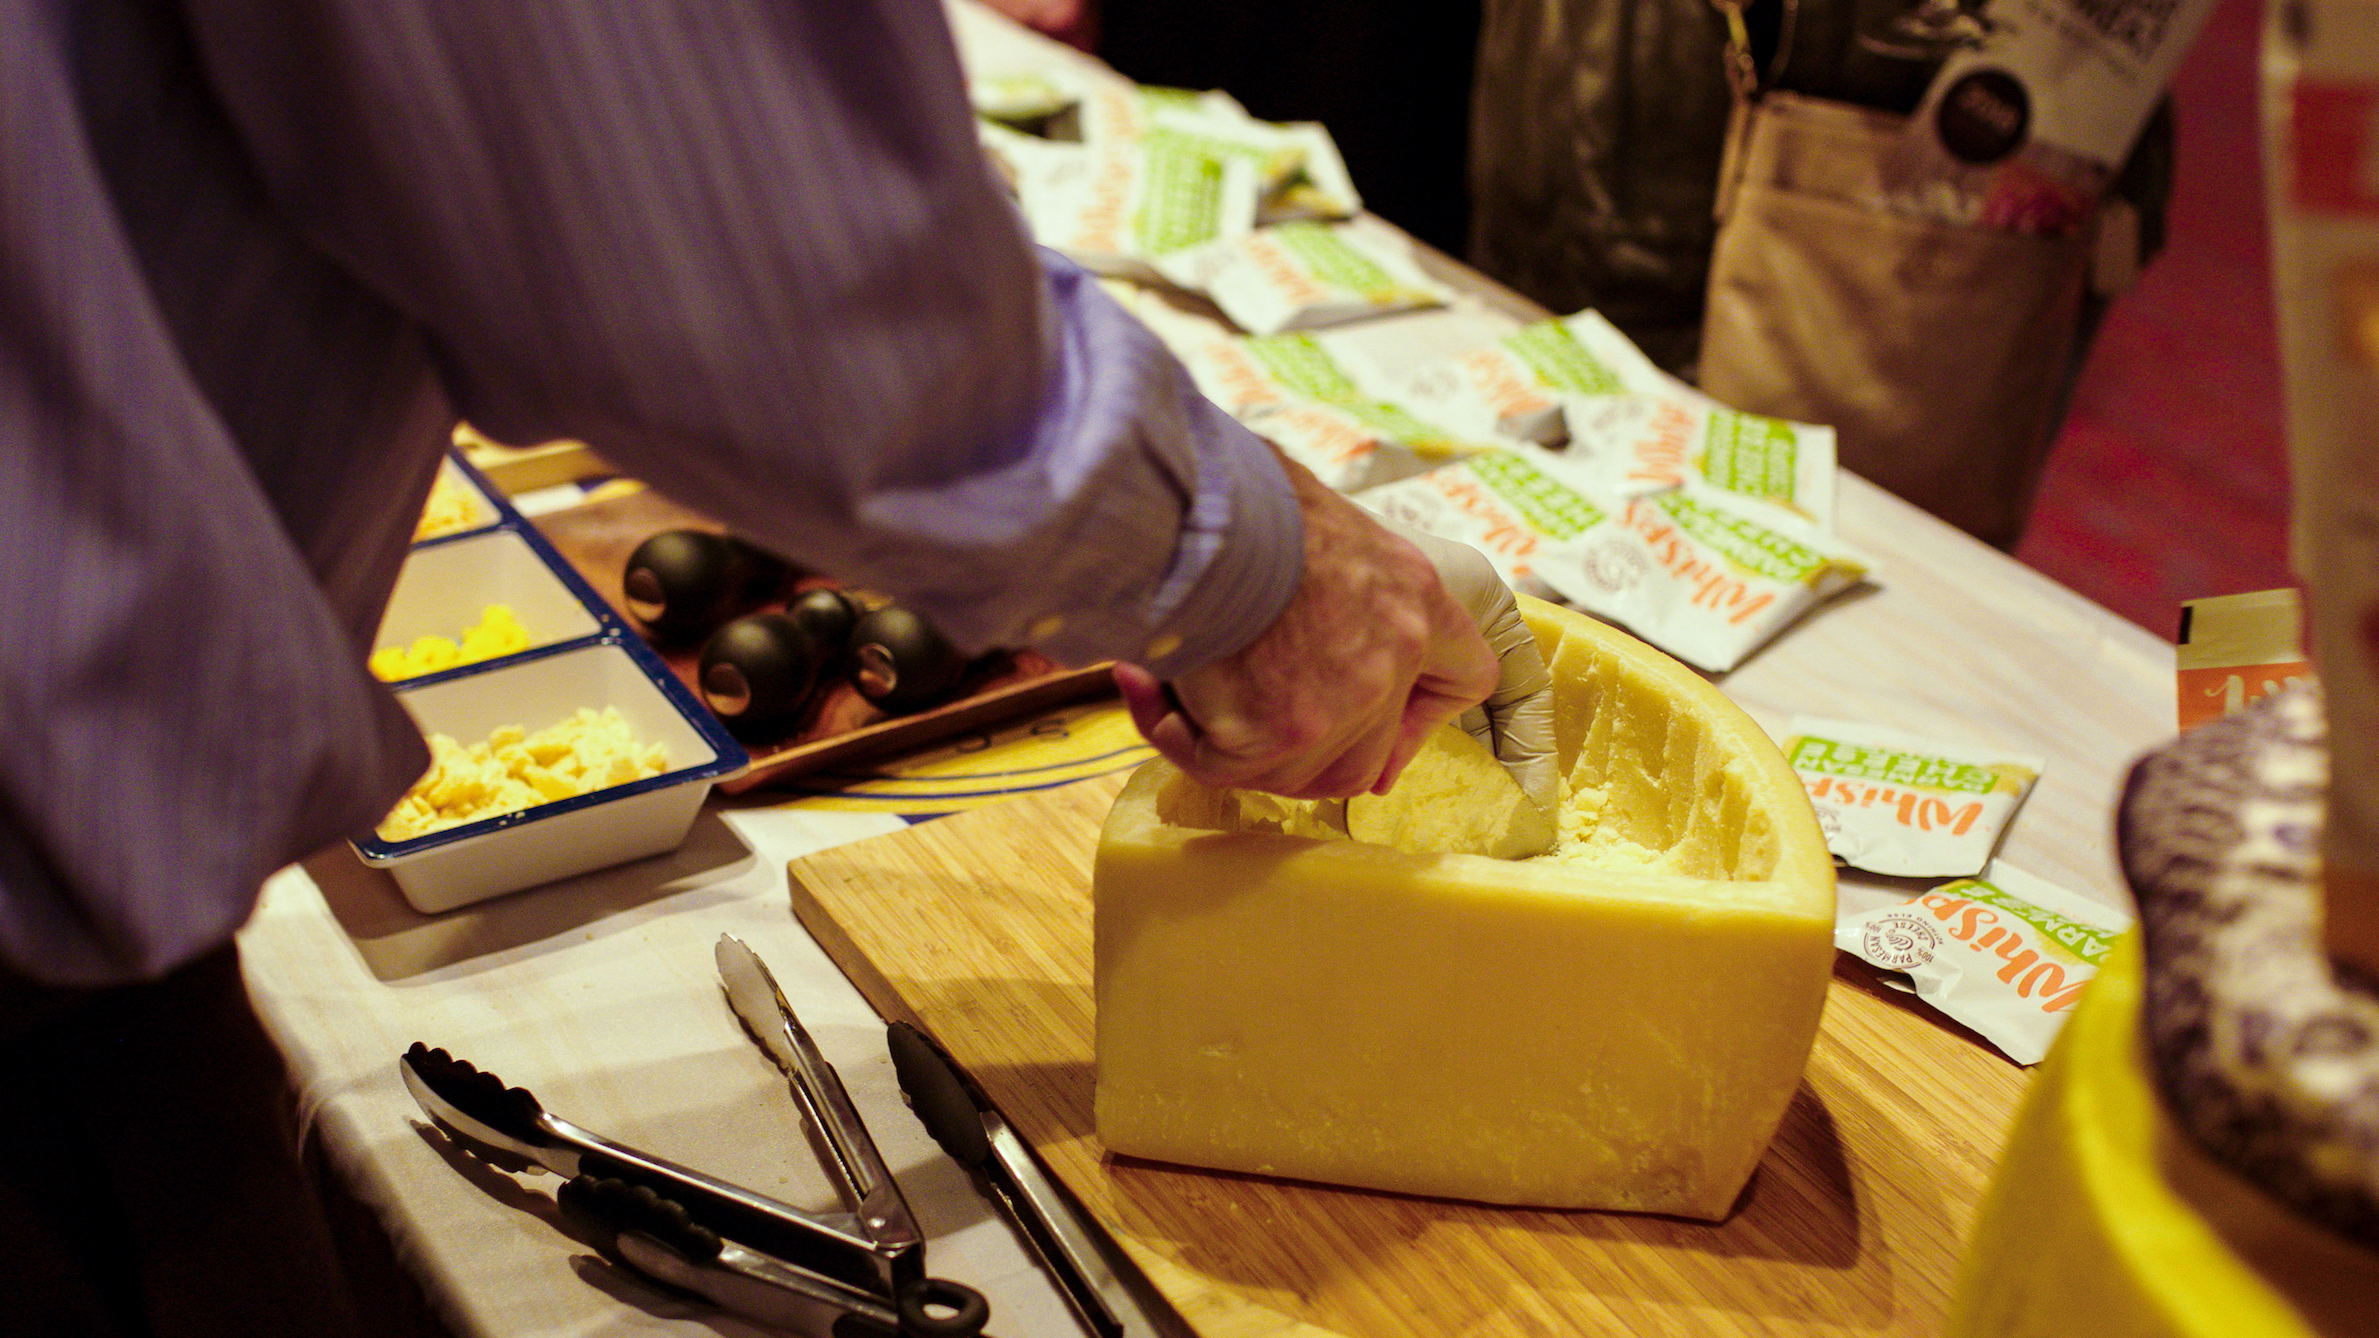 cheese-and-meat-festival-seattle